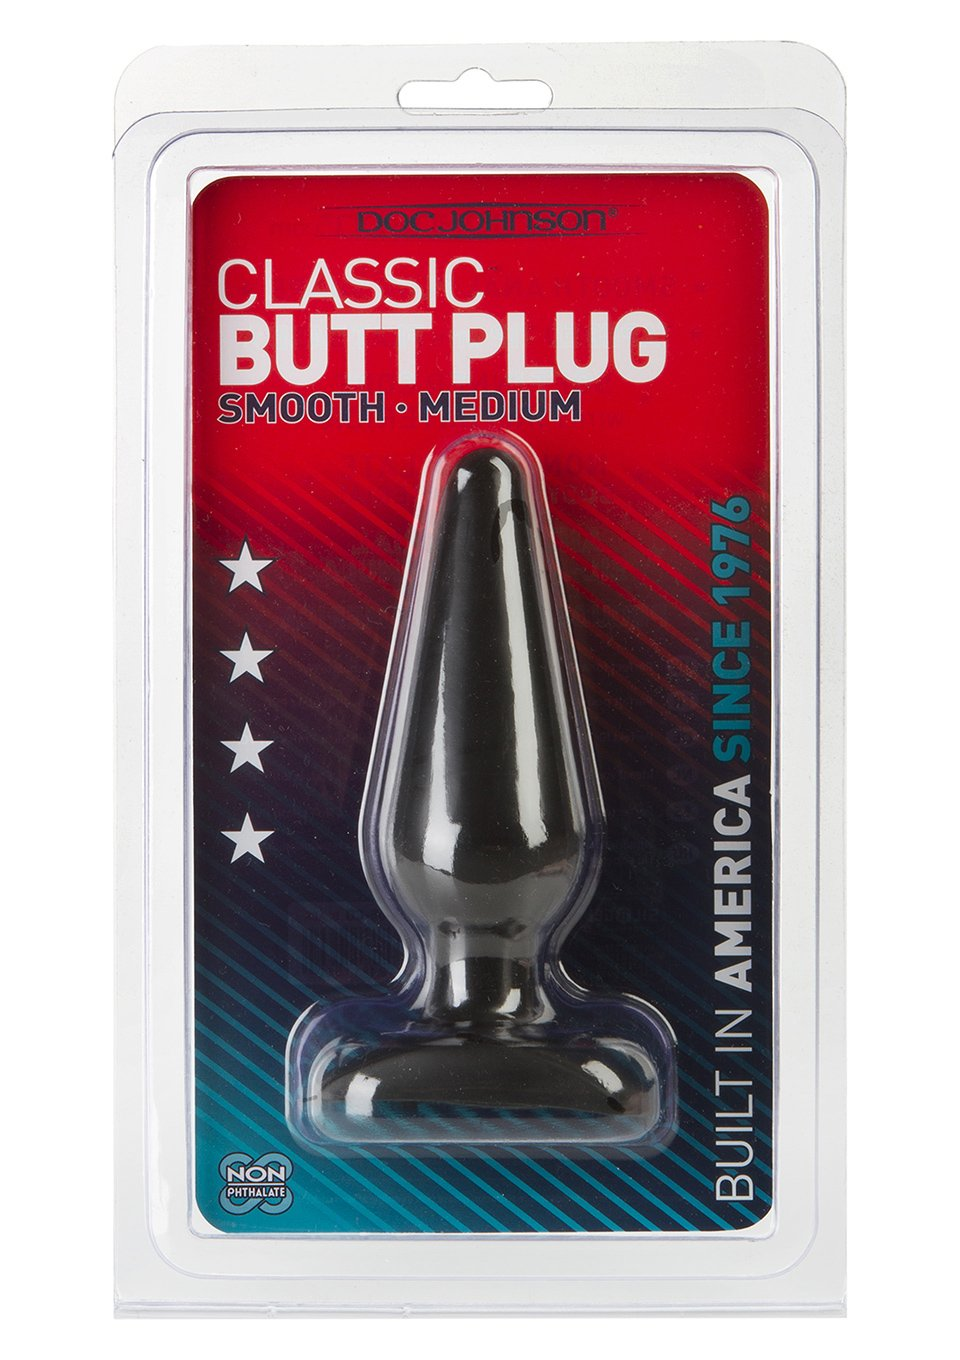 Anal plug from doctor johns